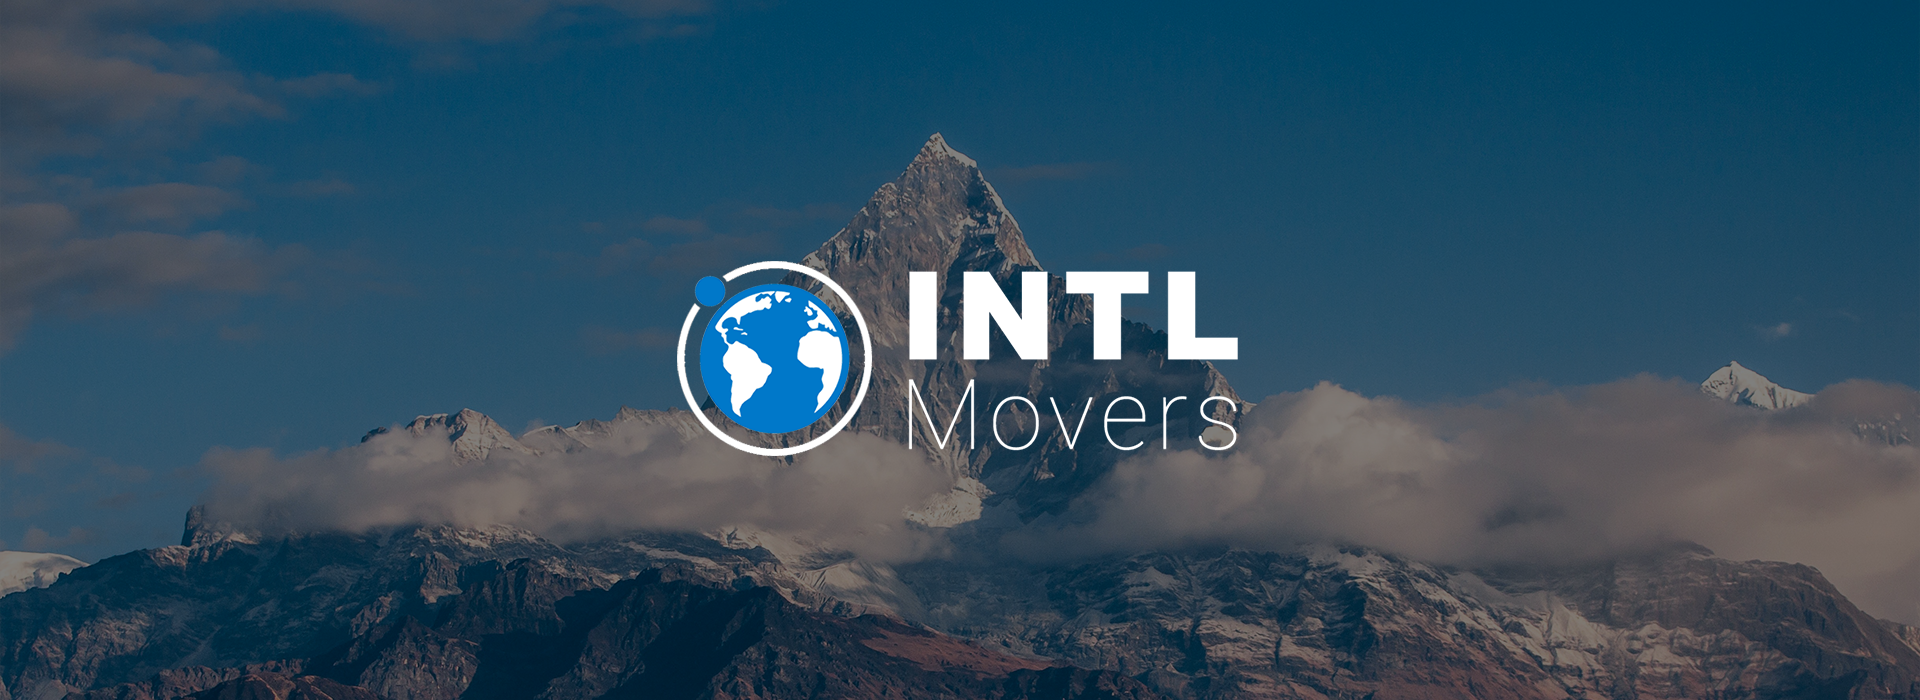 Логотип компании - INTL MOVERS